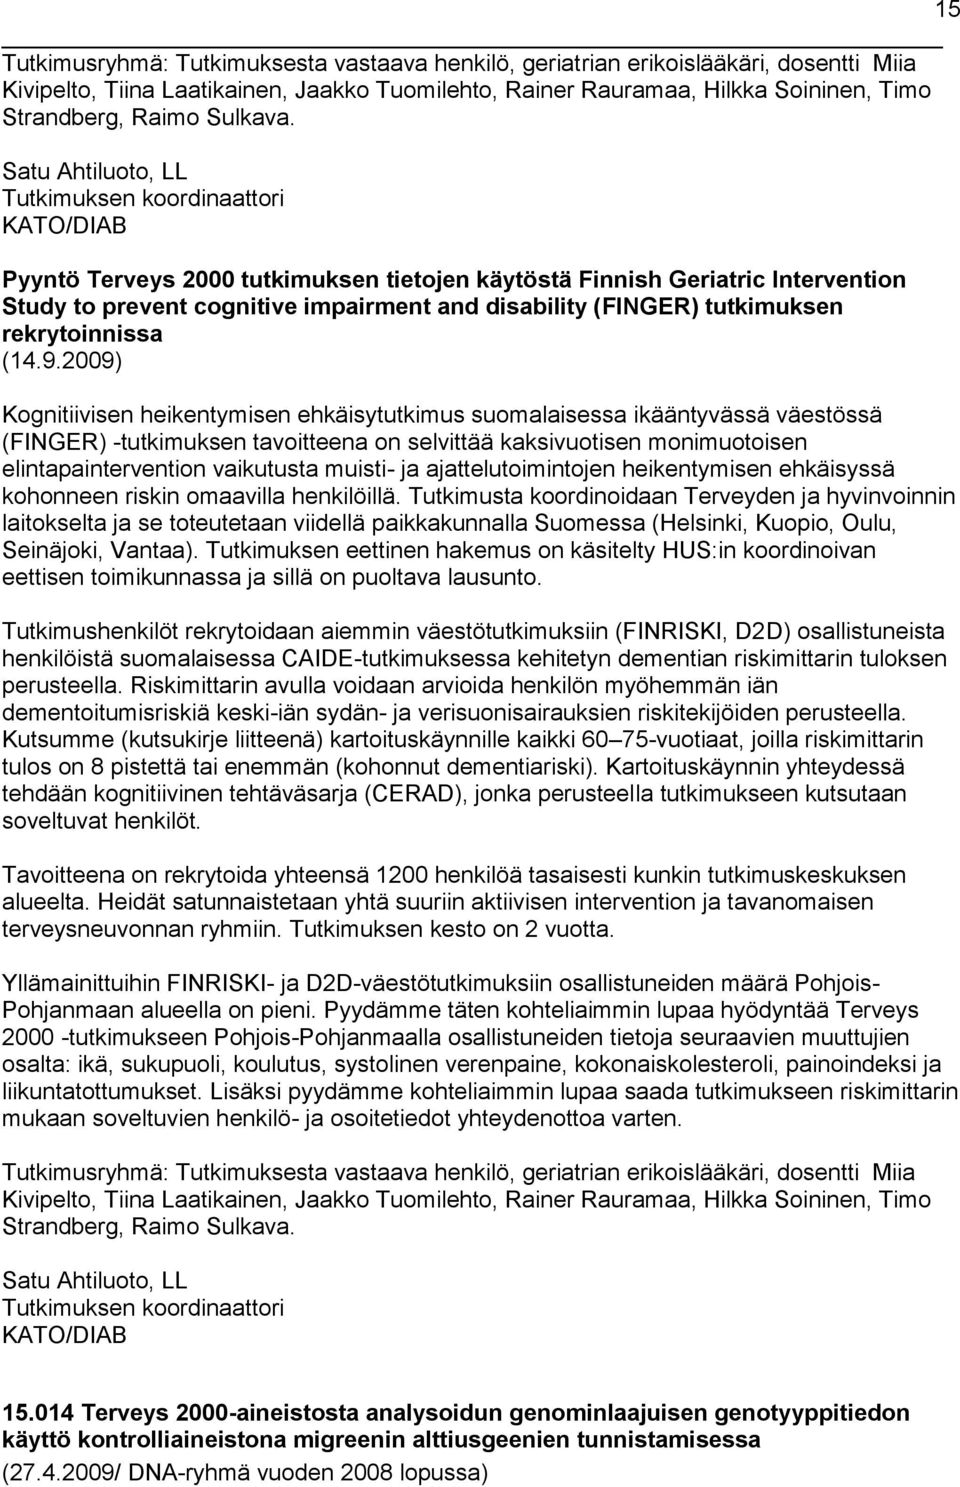 Satu Ahtiluoto, LL Tutkimuksen koordinaattori KATO/DIAB Pyyntö Terveys 2000 tutkimuksen tietojen käytöstä Finnish Geriatric Intervention Study to prevent cognitive impairment and disability (FINGER)